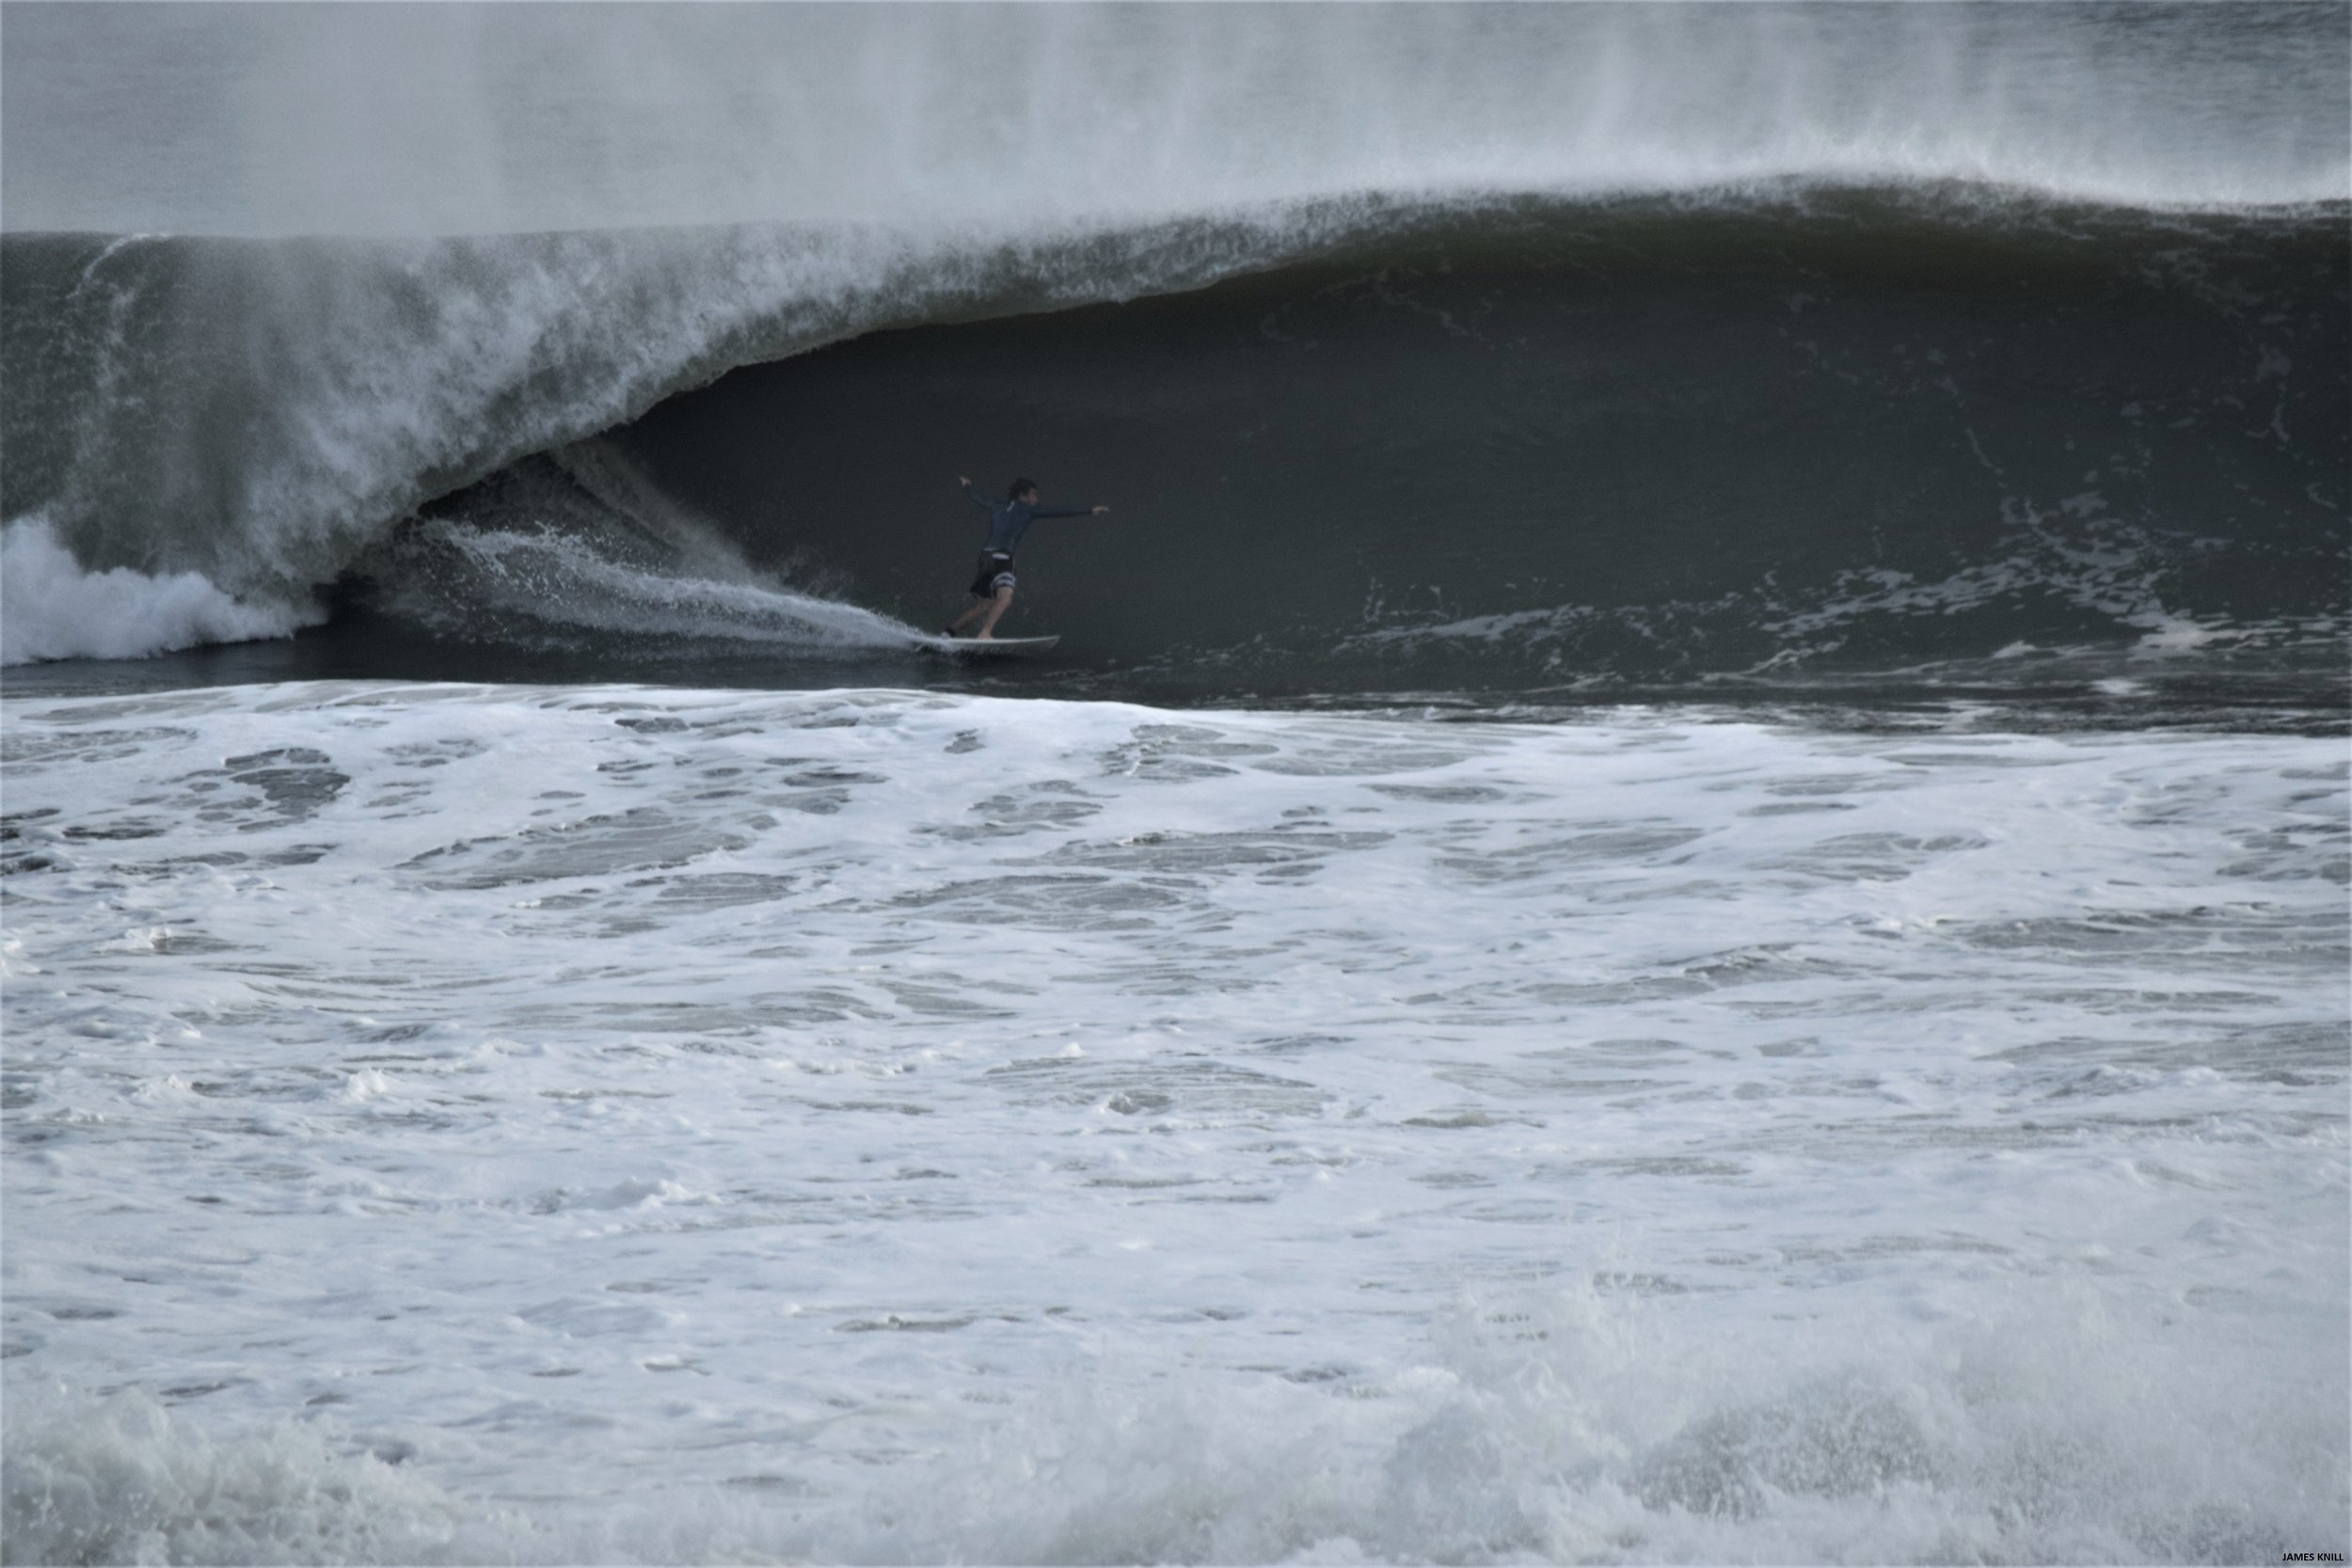 Winter Storm Riley. Ylan Abeger Surfing In Martin County, Florida. Photography By James Knill